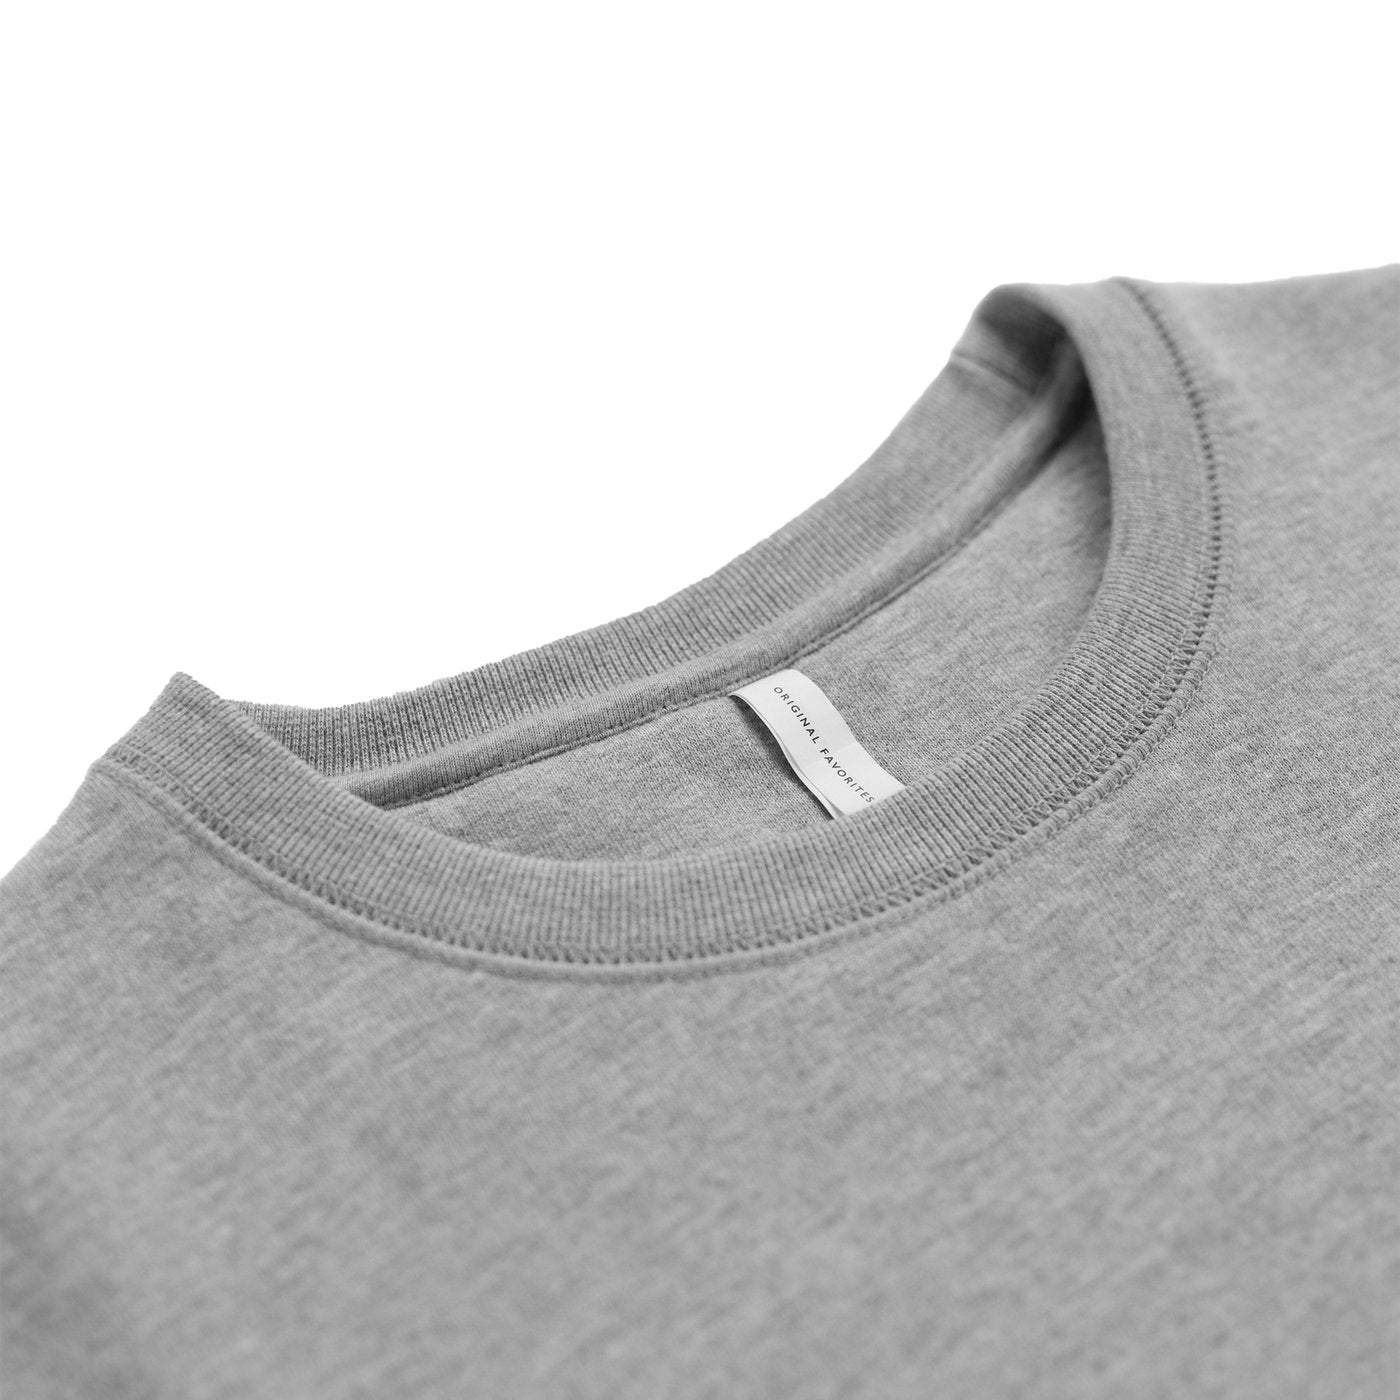 Heather Grey Organic Cotton Crewneck Men's Sweatshirt